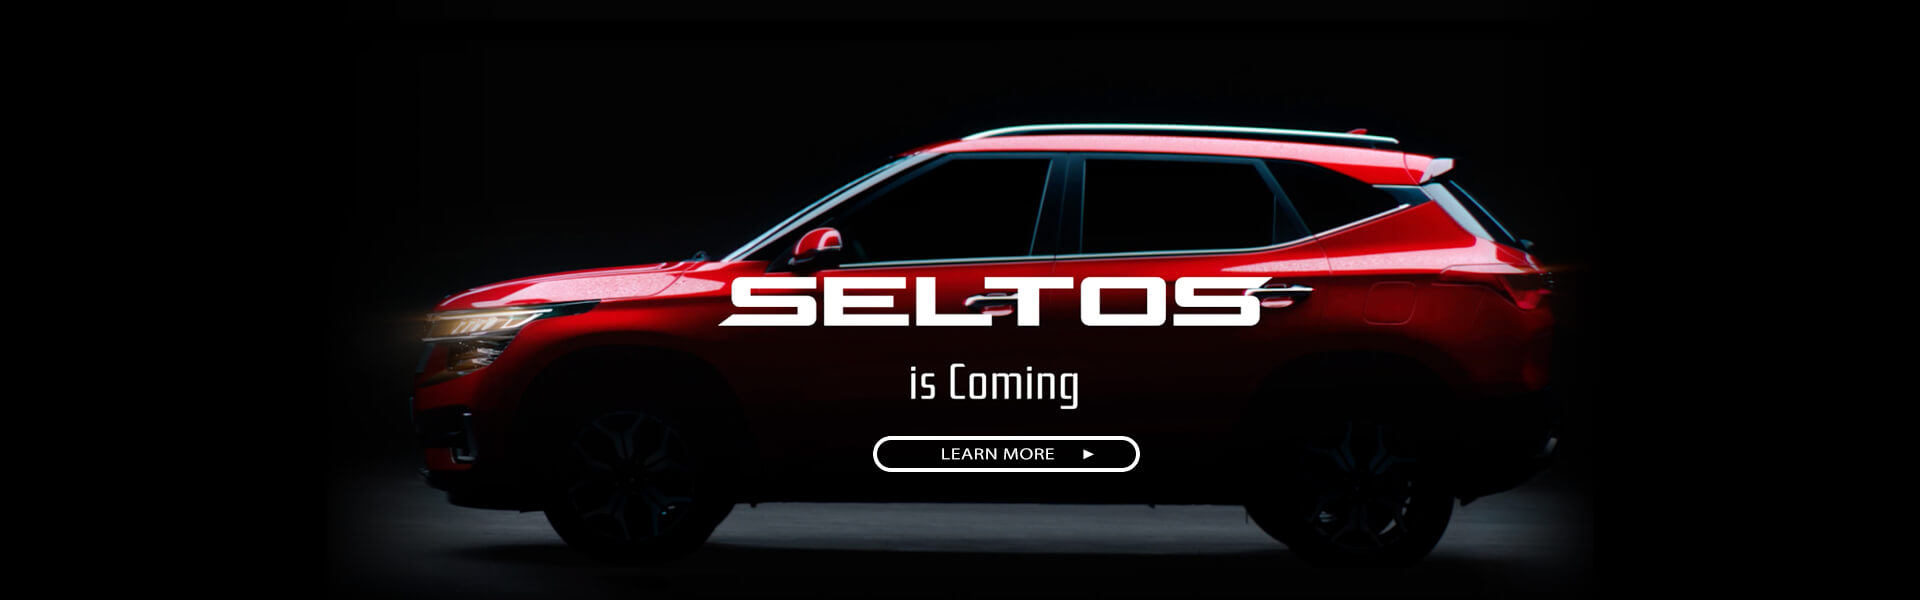 Kia Seltos Coming Soon